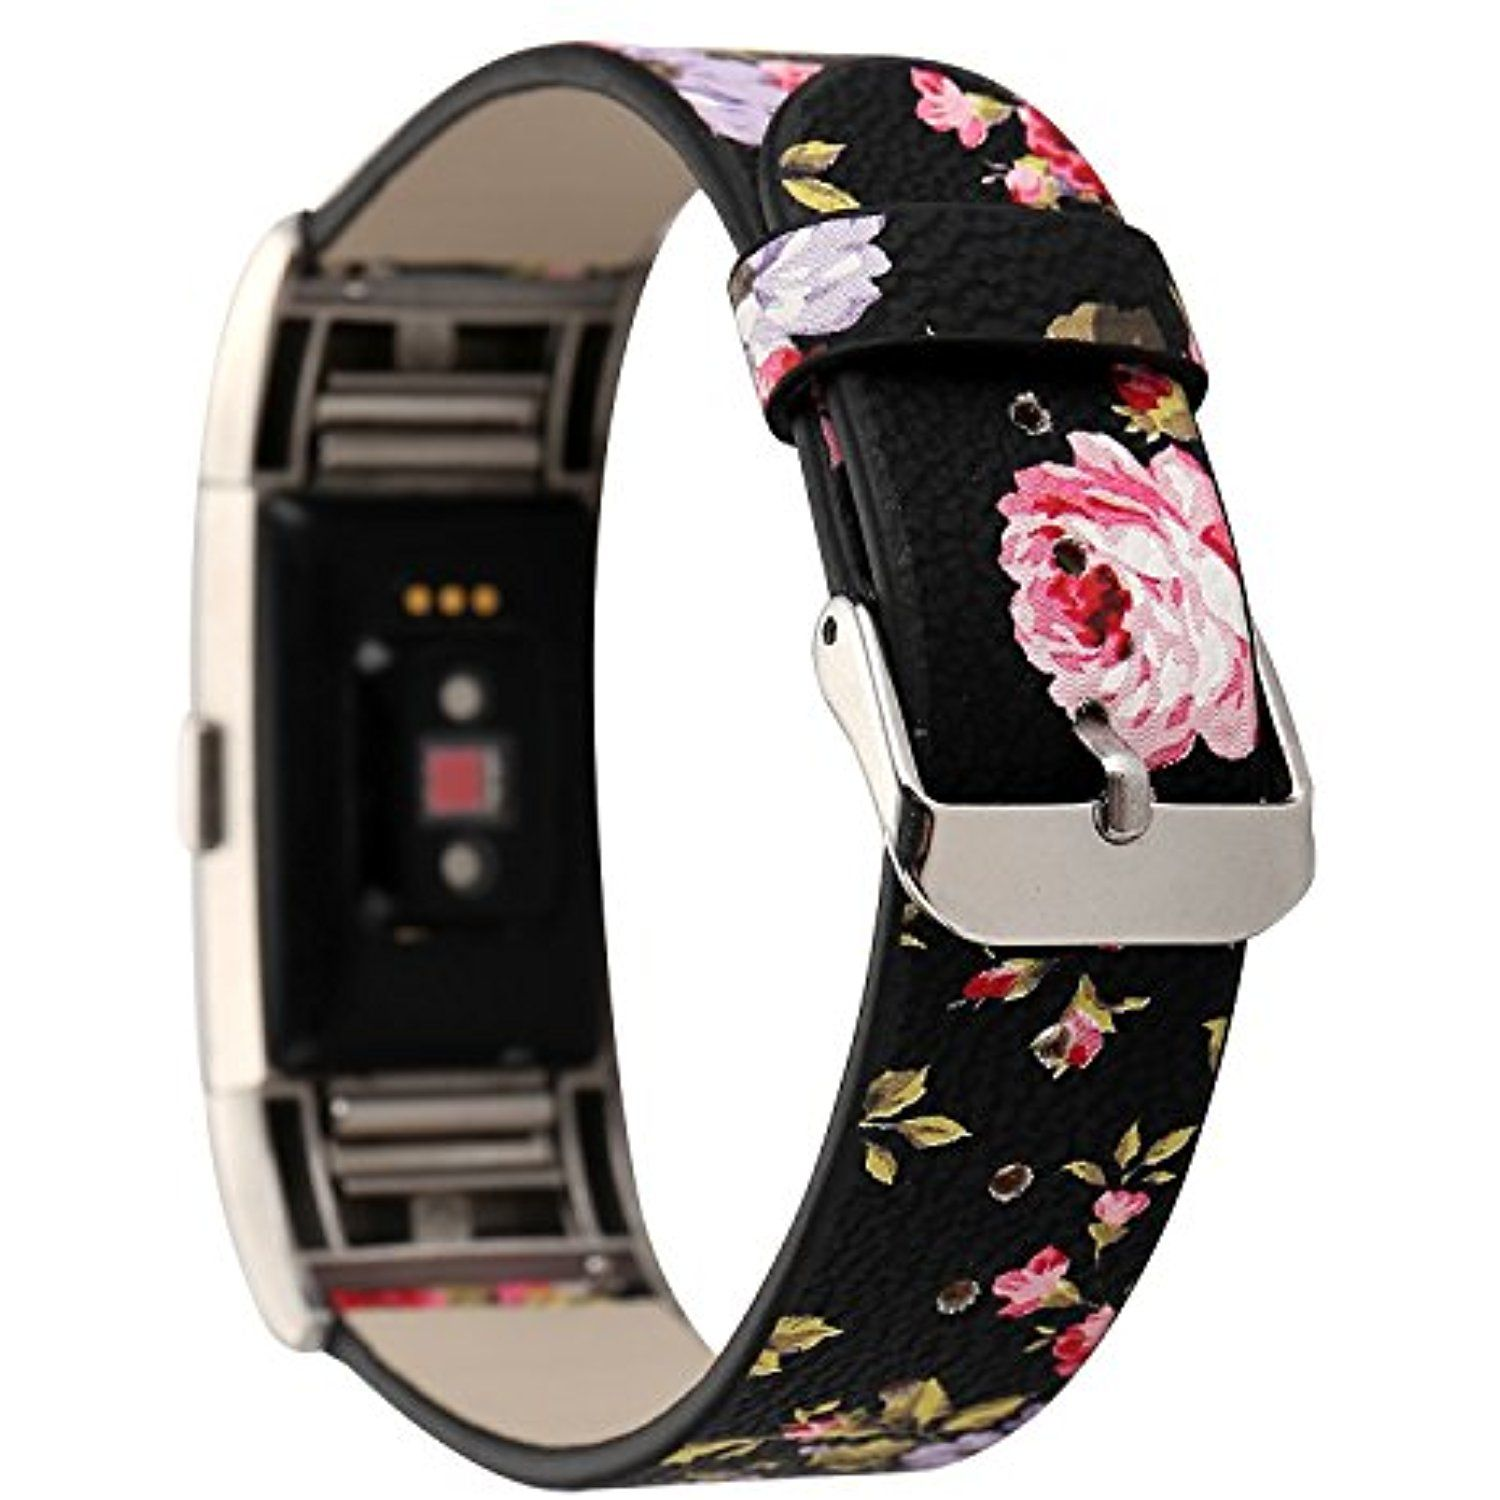 Replacement 5Row Beads Adjustable Watchband Wrist Band Strap for Fitbit Charge 2